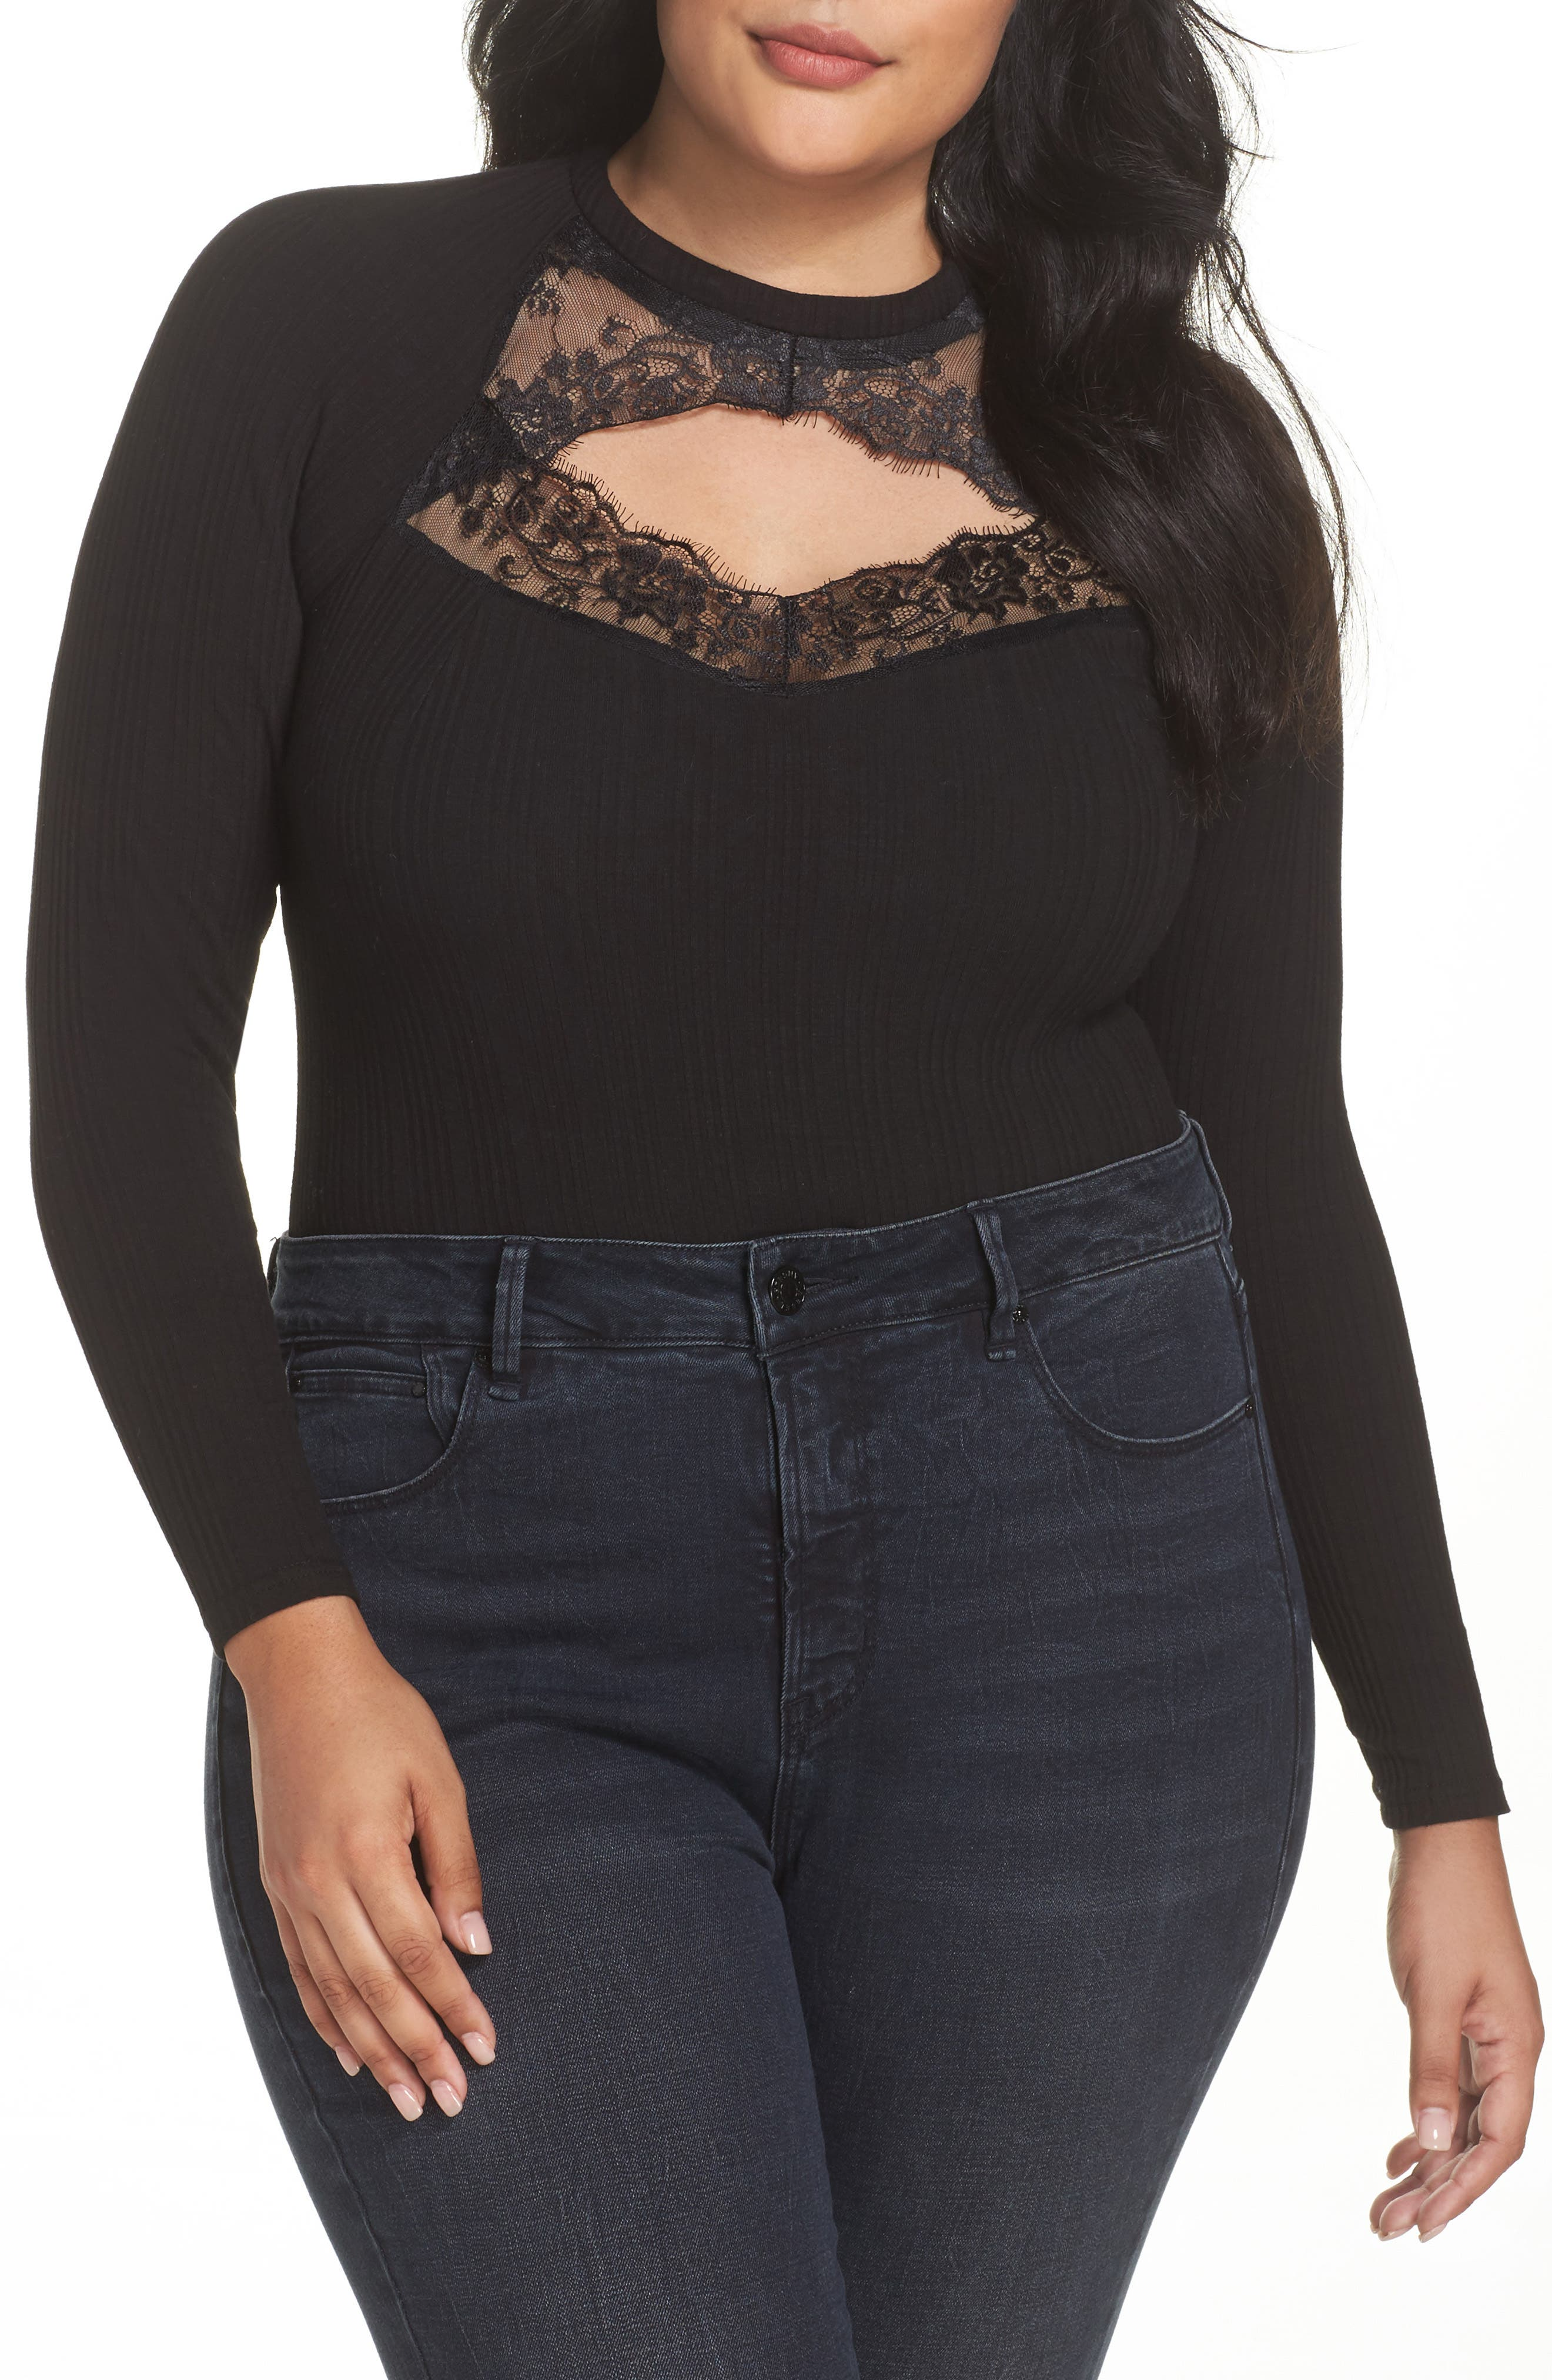 Main Image - LOST INK Ribbed Lace Trim Bodysuit (Plus Size)